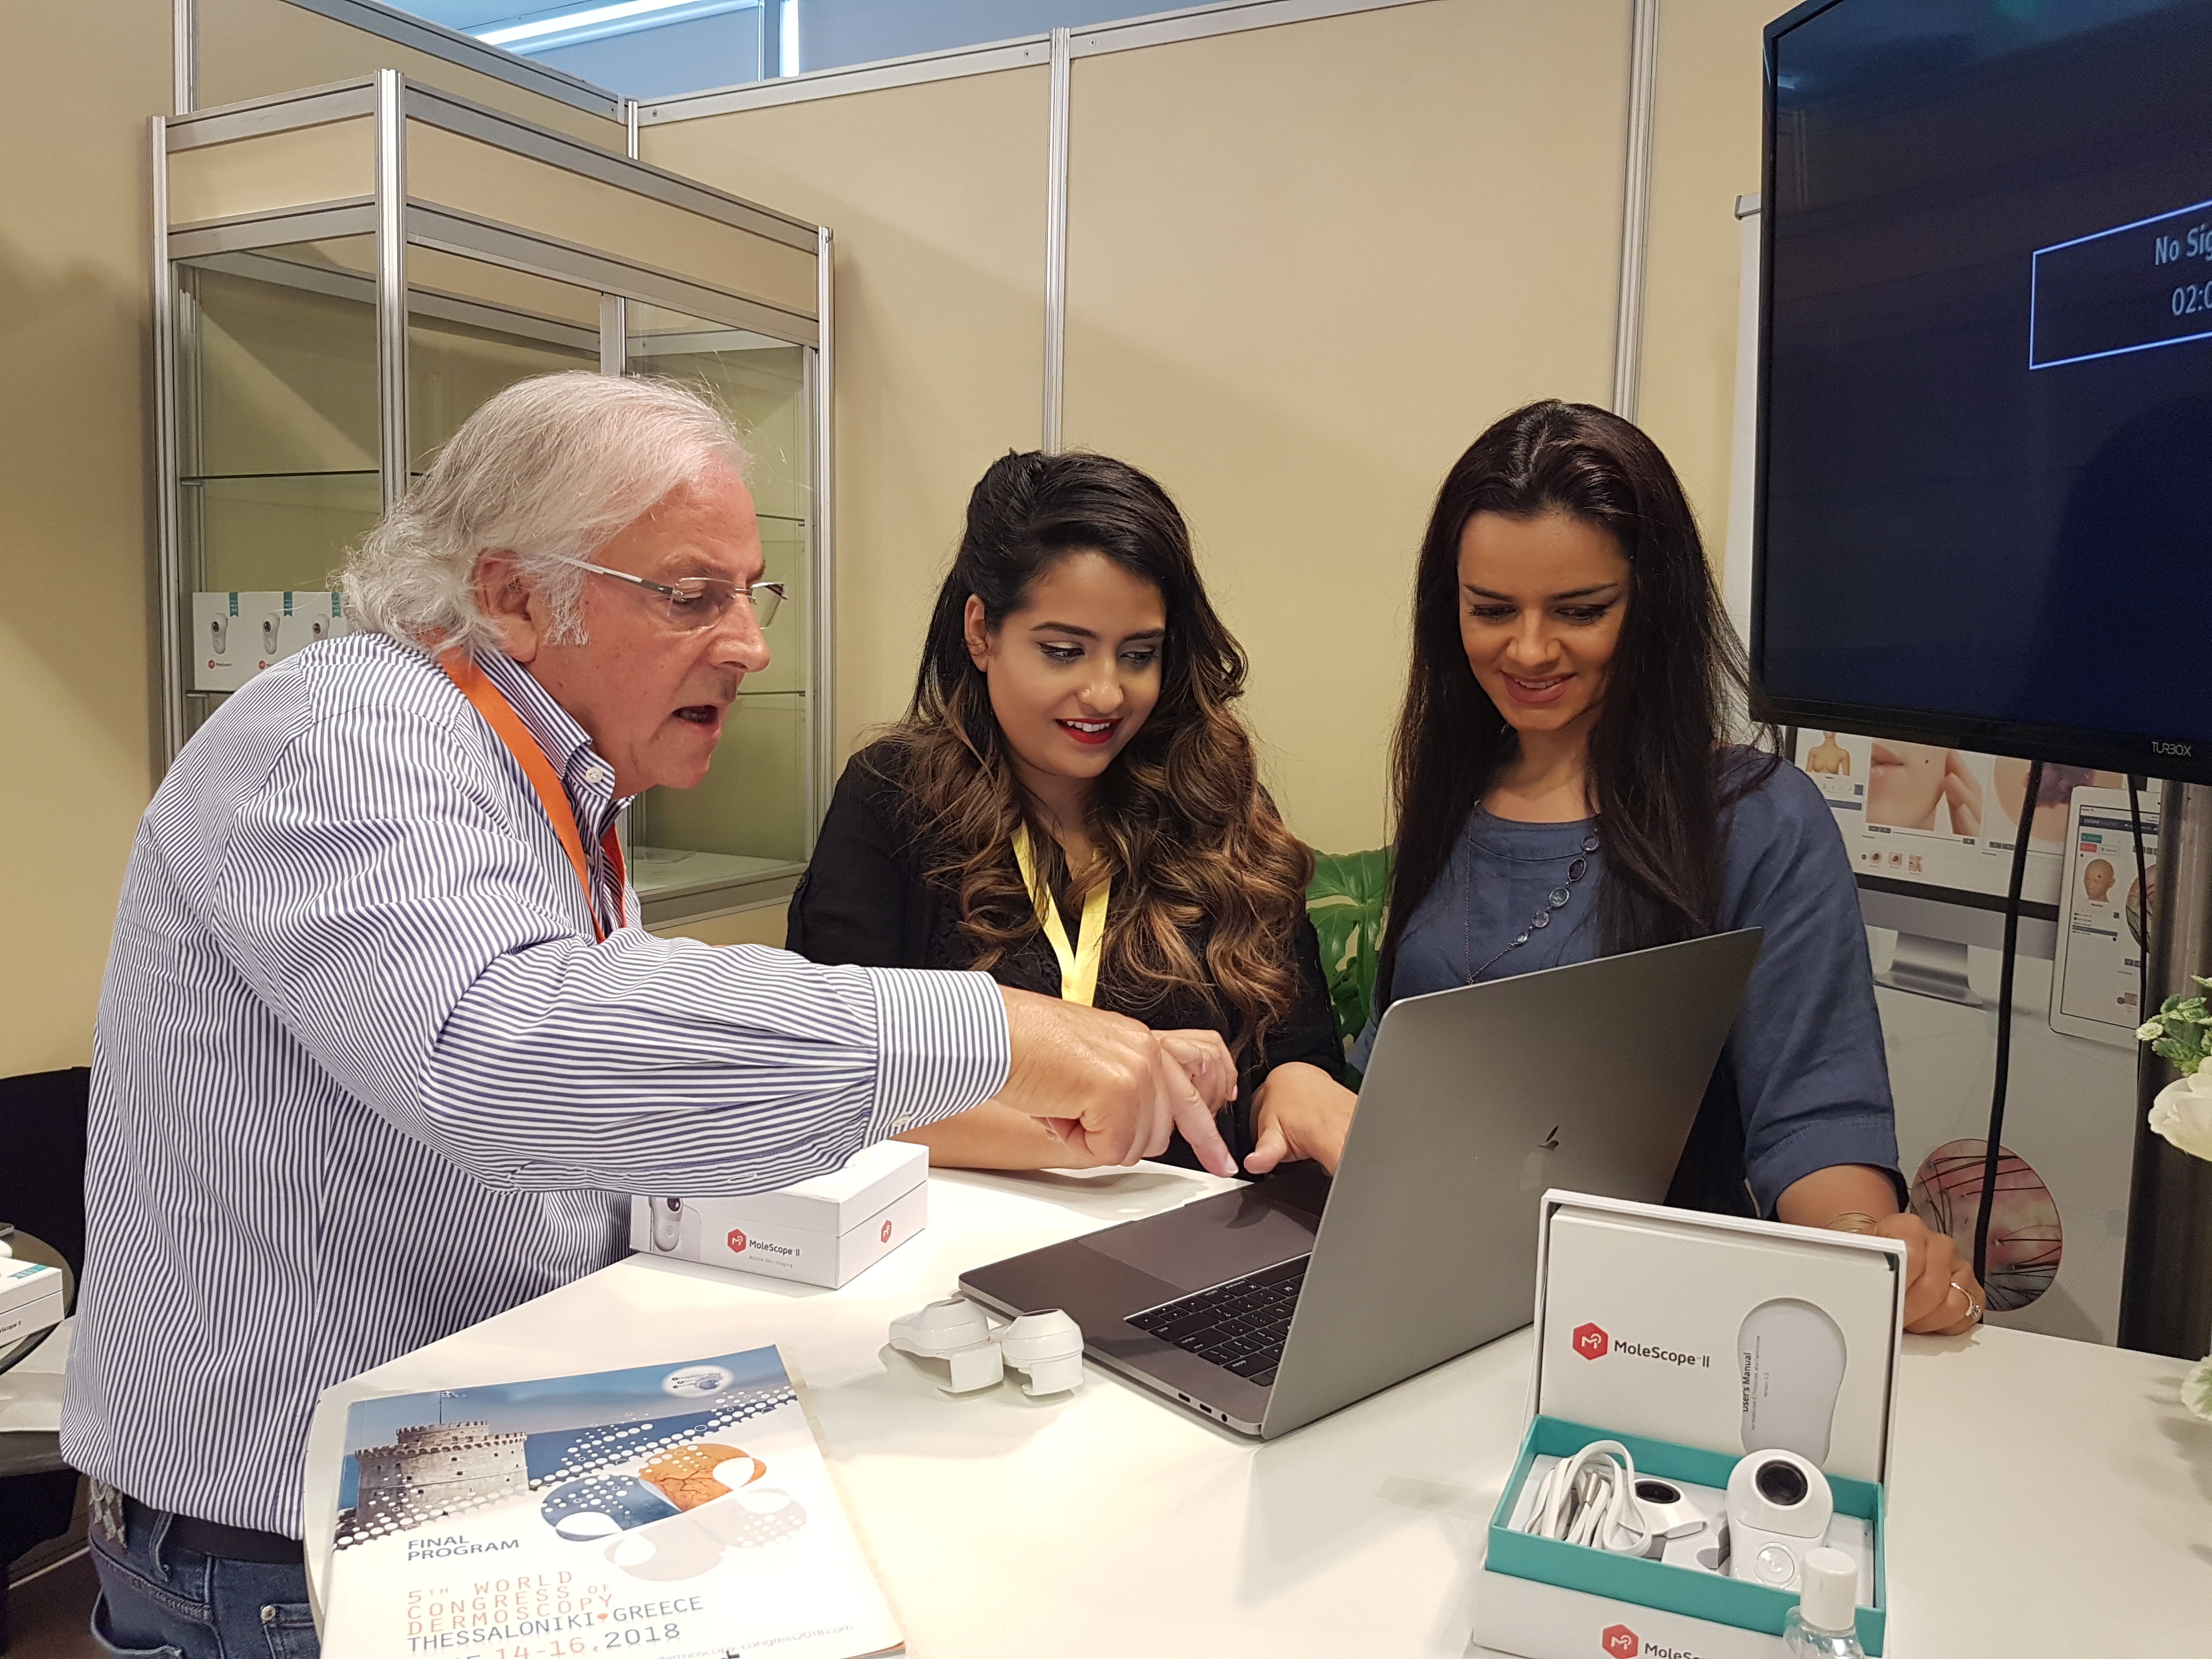 /media/news_images/2018/06/18/WCD_2018_-_Demoing_Dermengine-Intelligent_dermatology_softwar.jpg